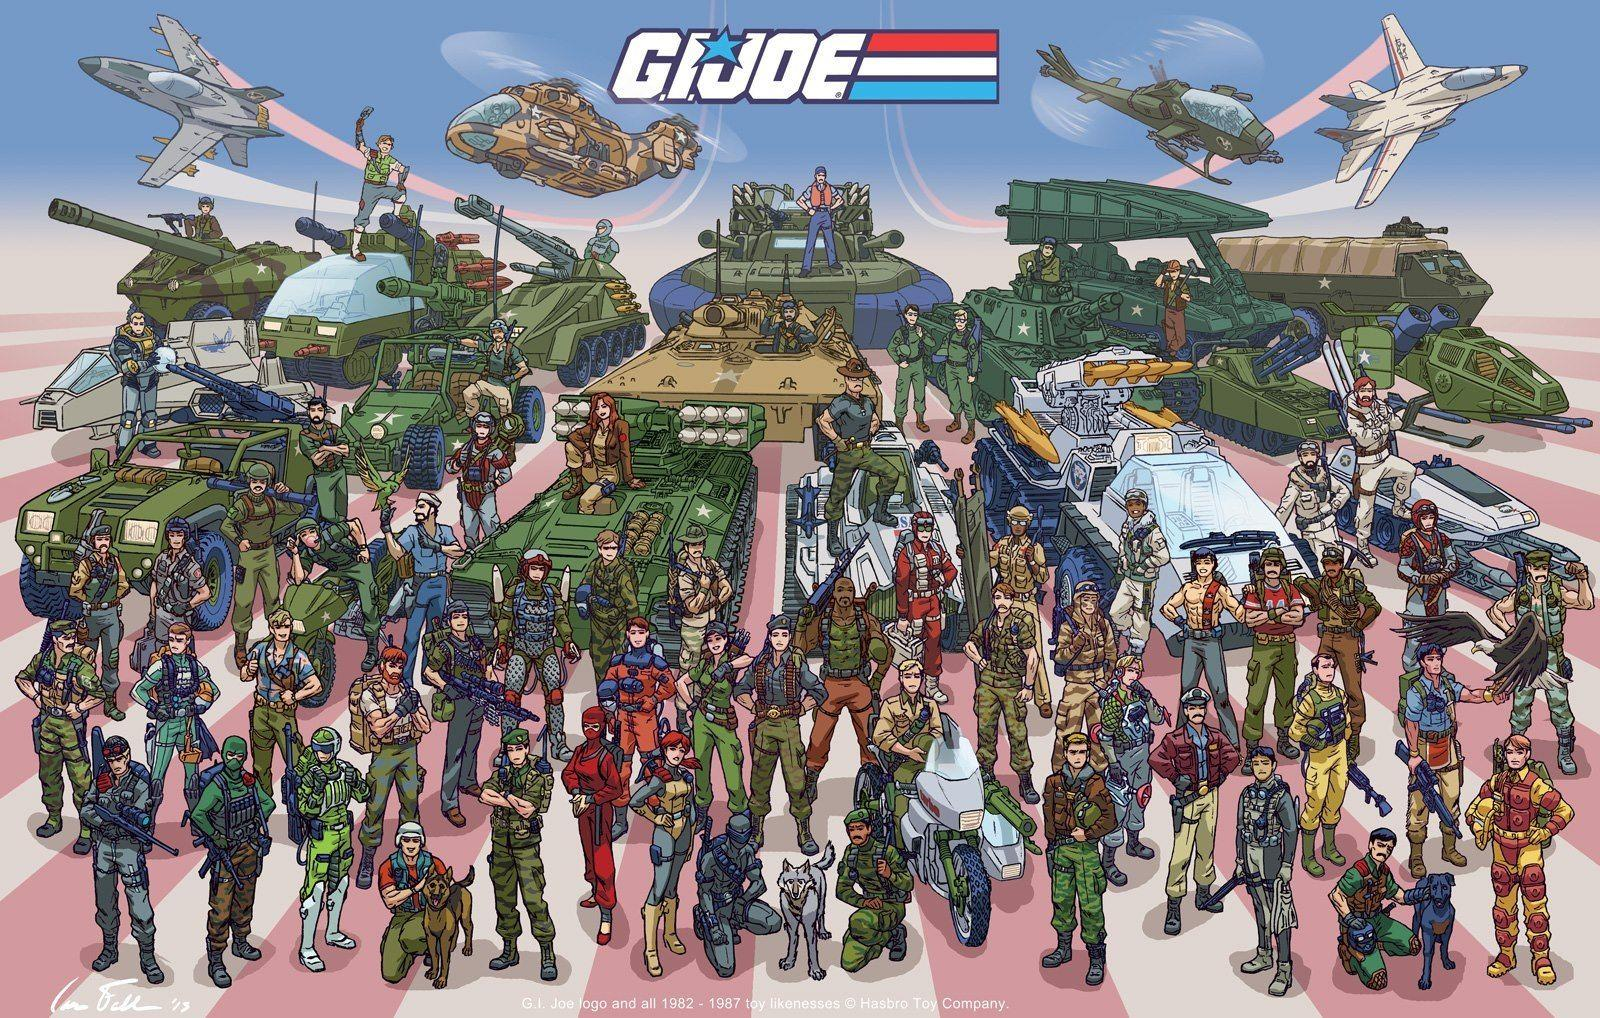 Artist Ian Fell Produces AMAZING GI Joe Poster